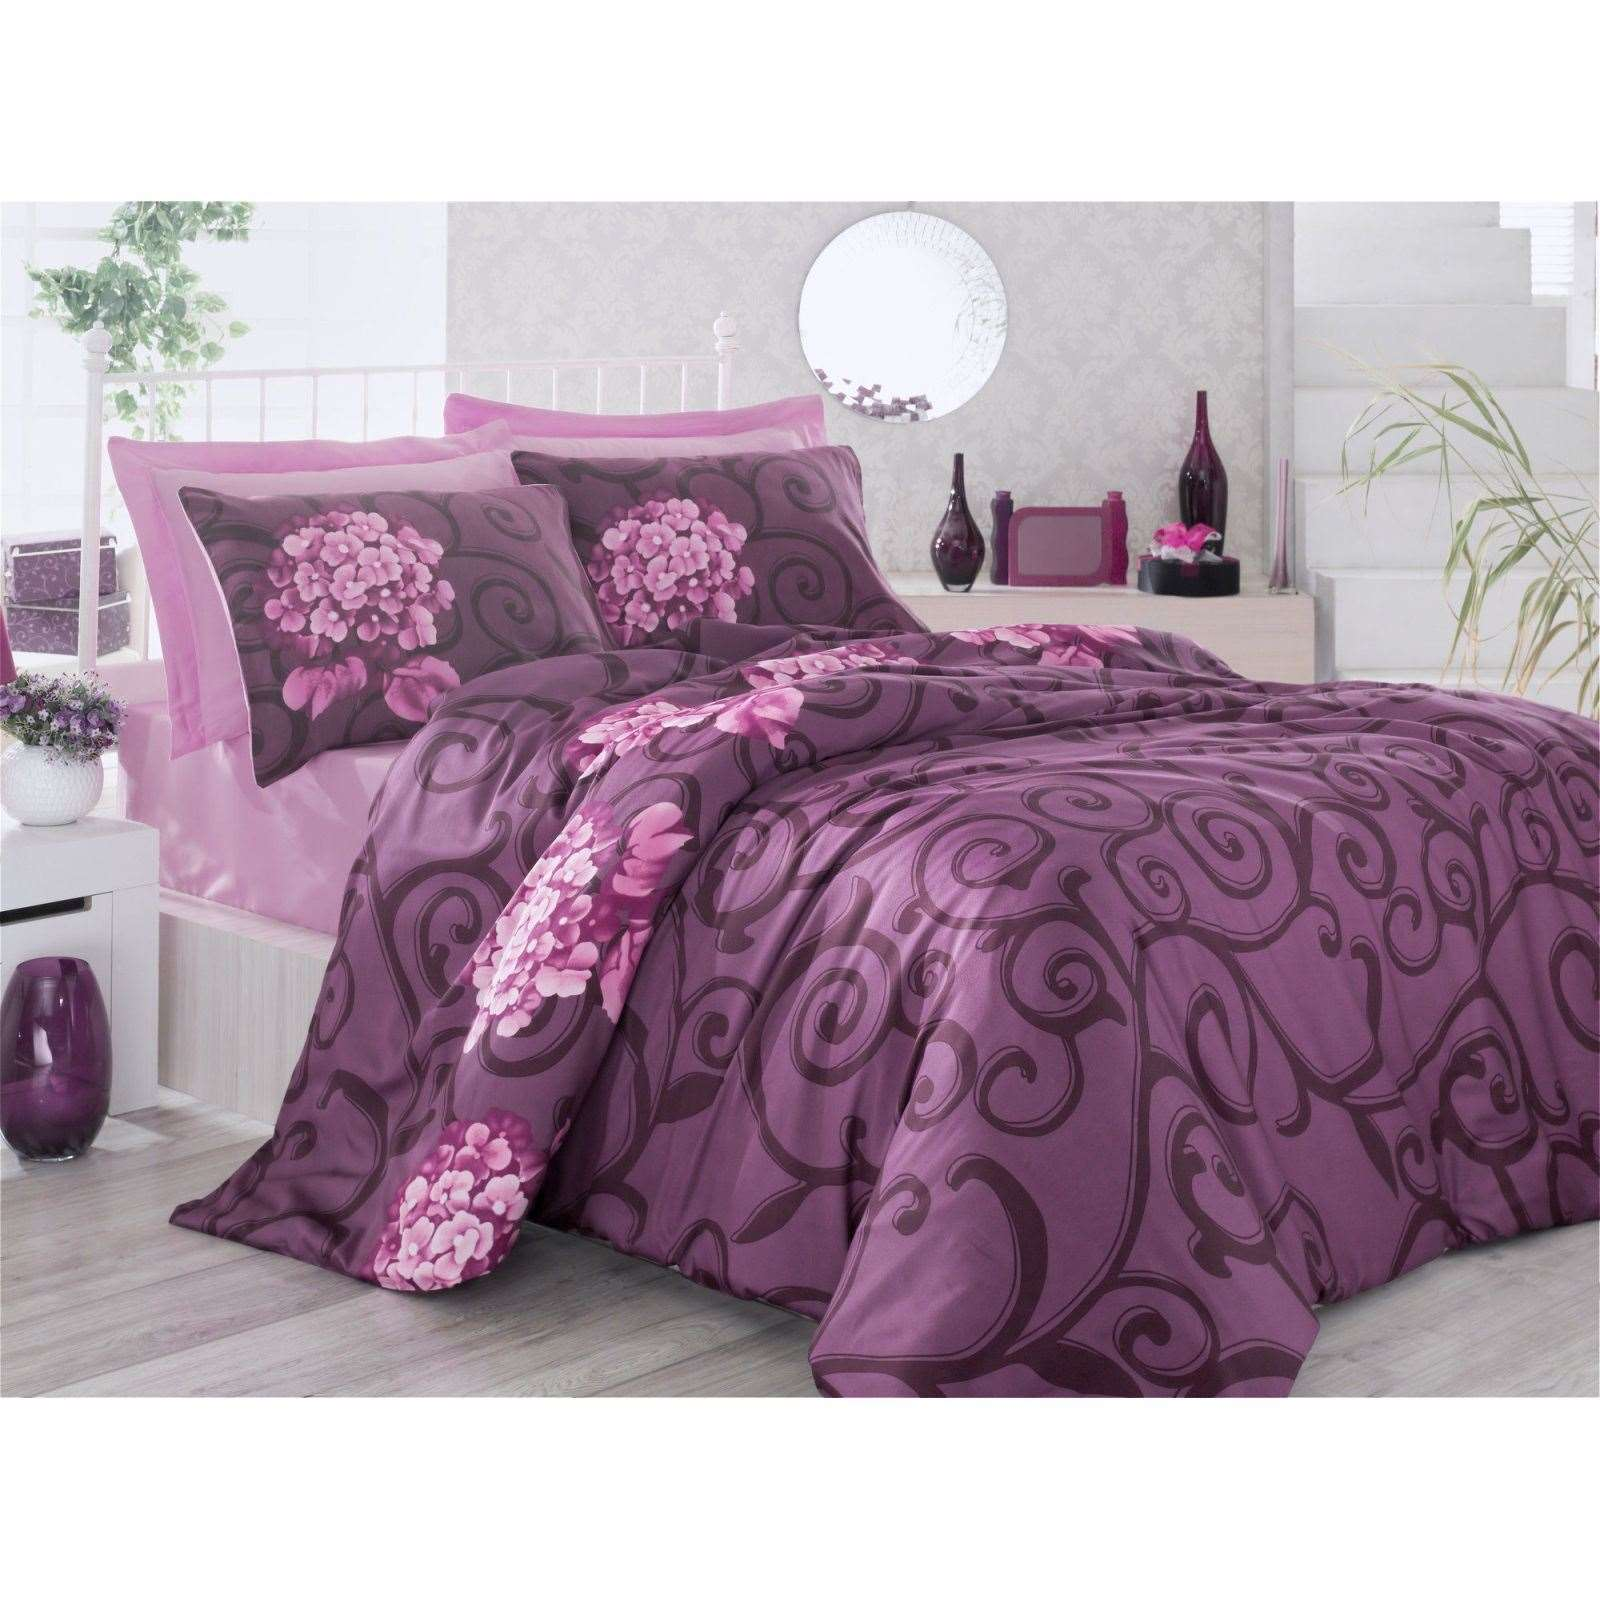 victoria home parure de lit en satin de coton mauve brandalley. Black Bedroom Furniture Sets. Home Design Ideas